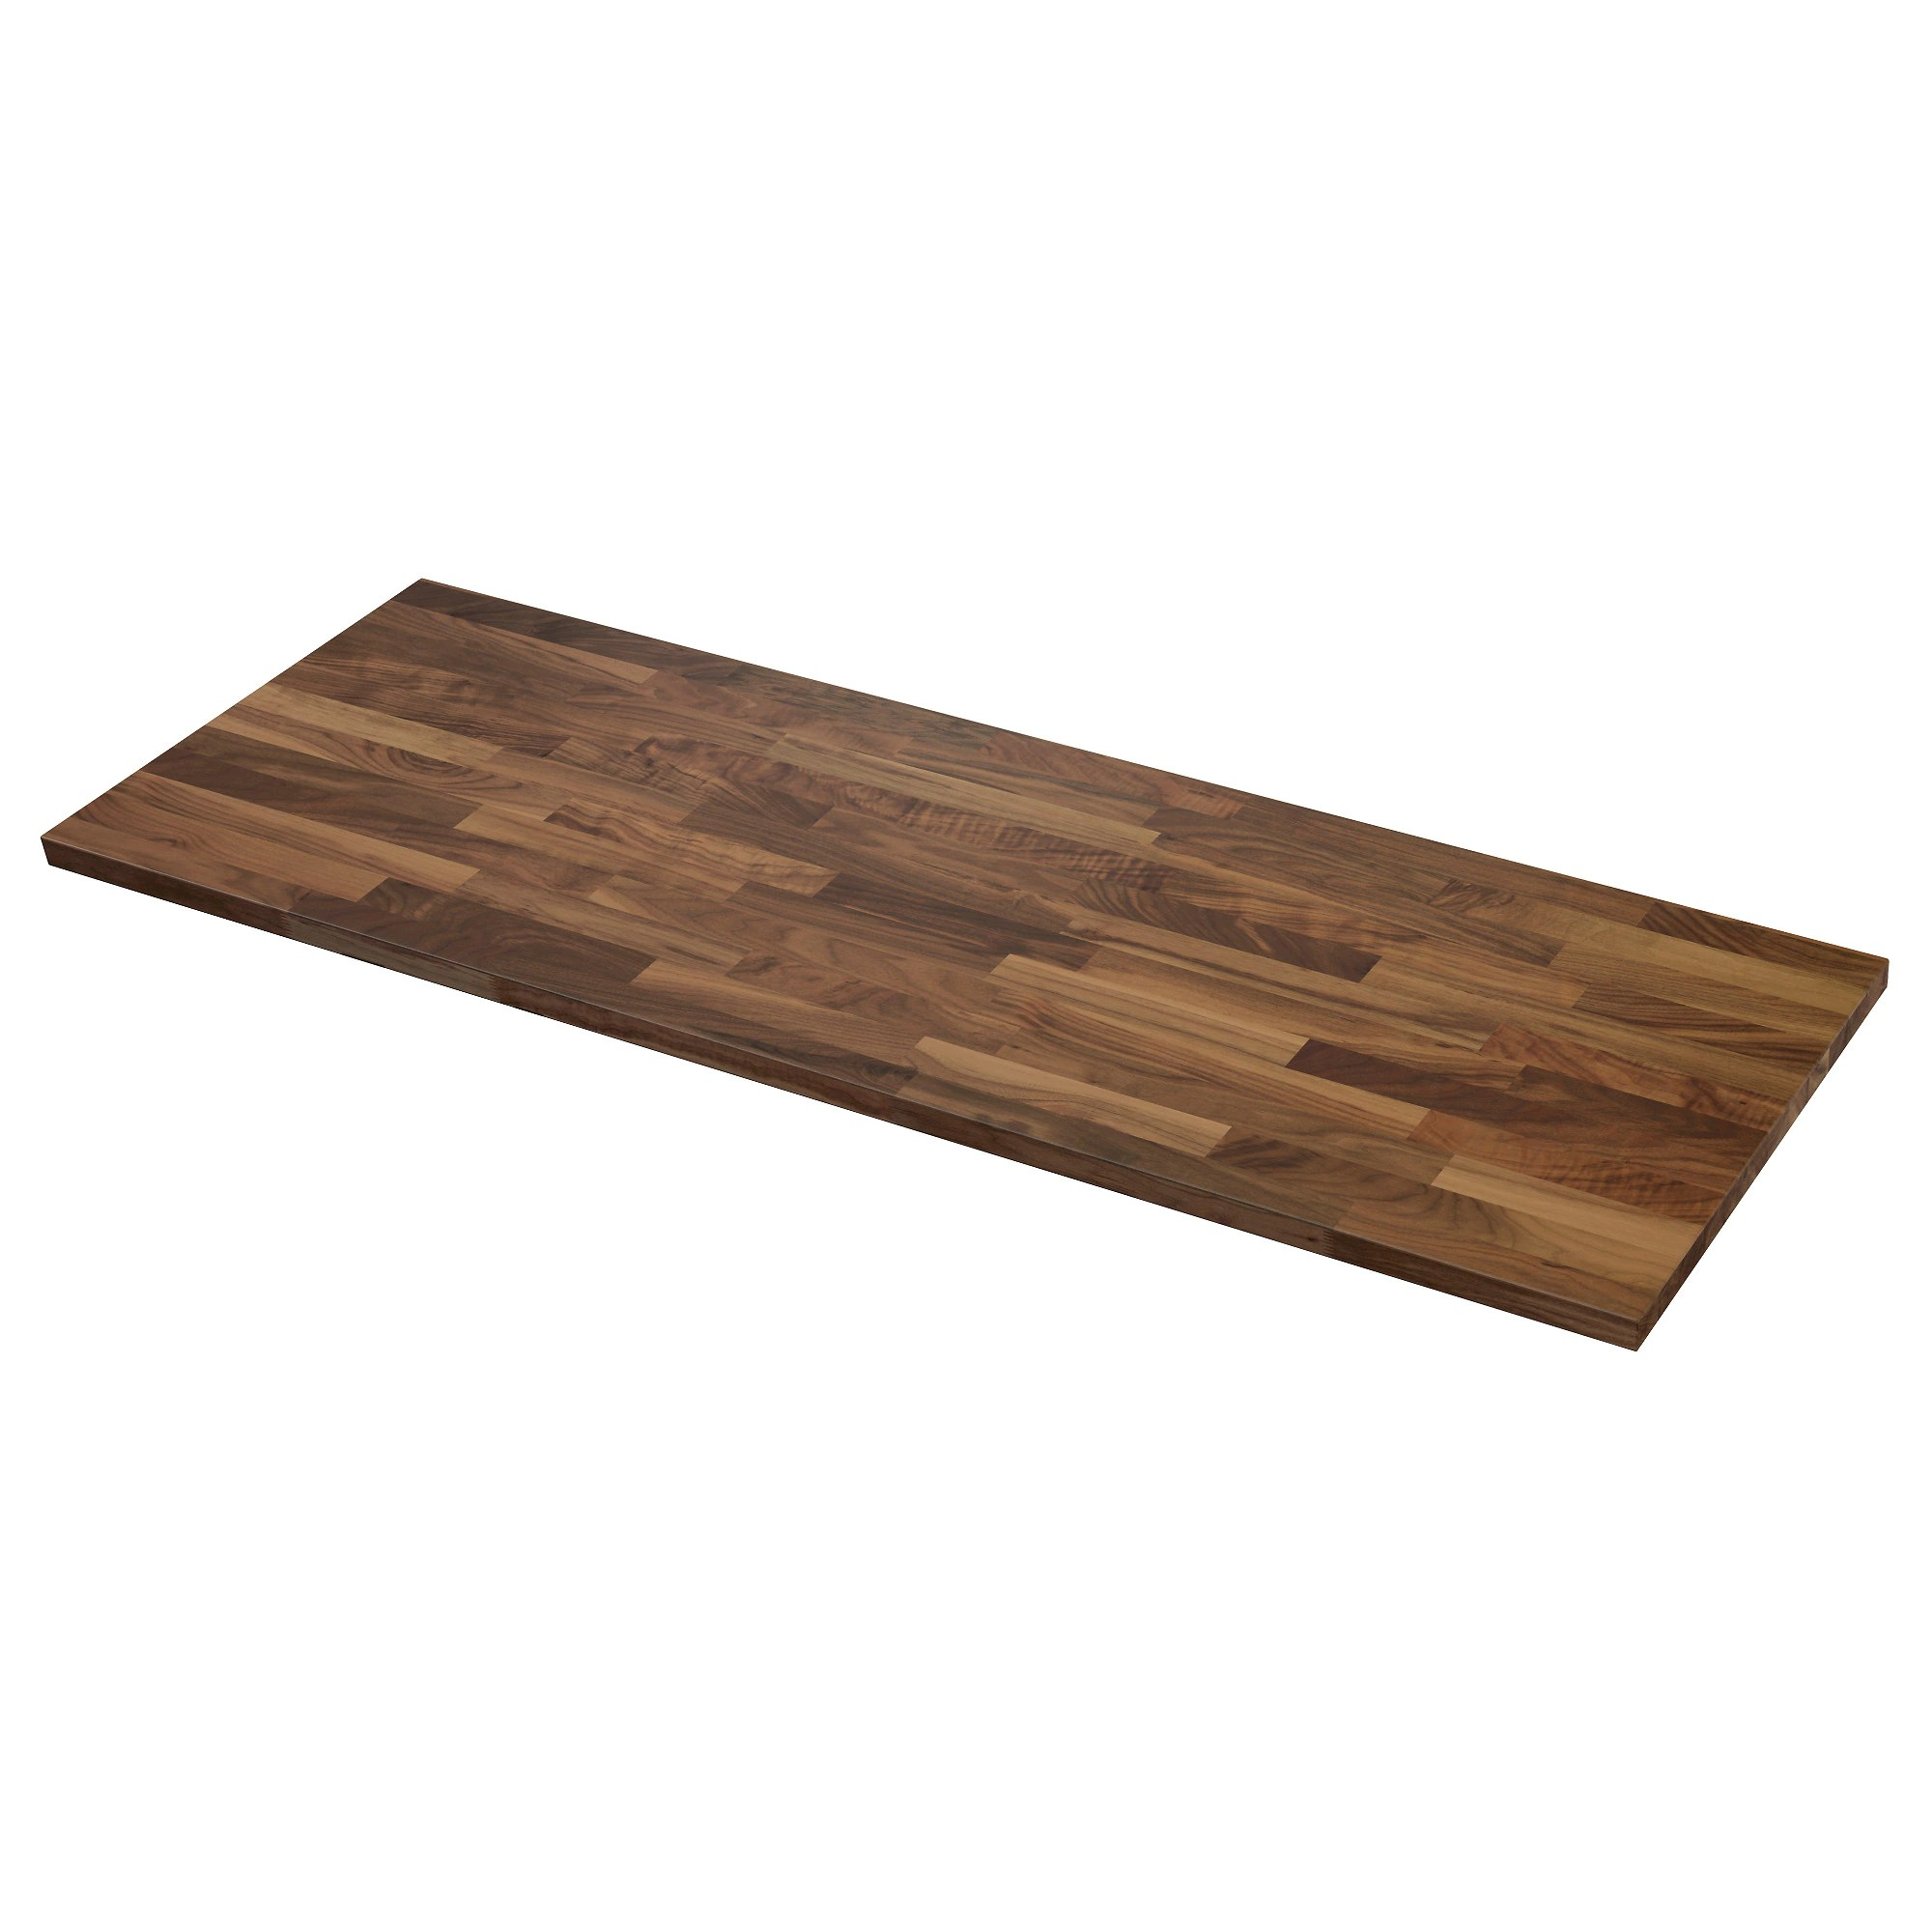 How To Waterproof Wood Countertop Karlby Countertop Walnut